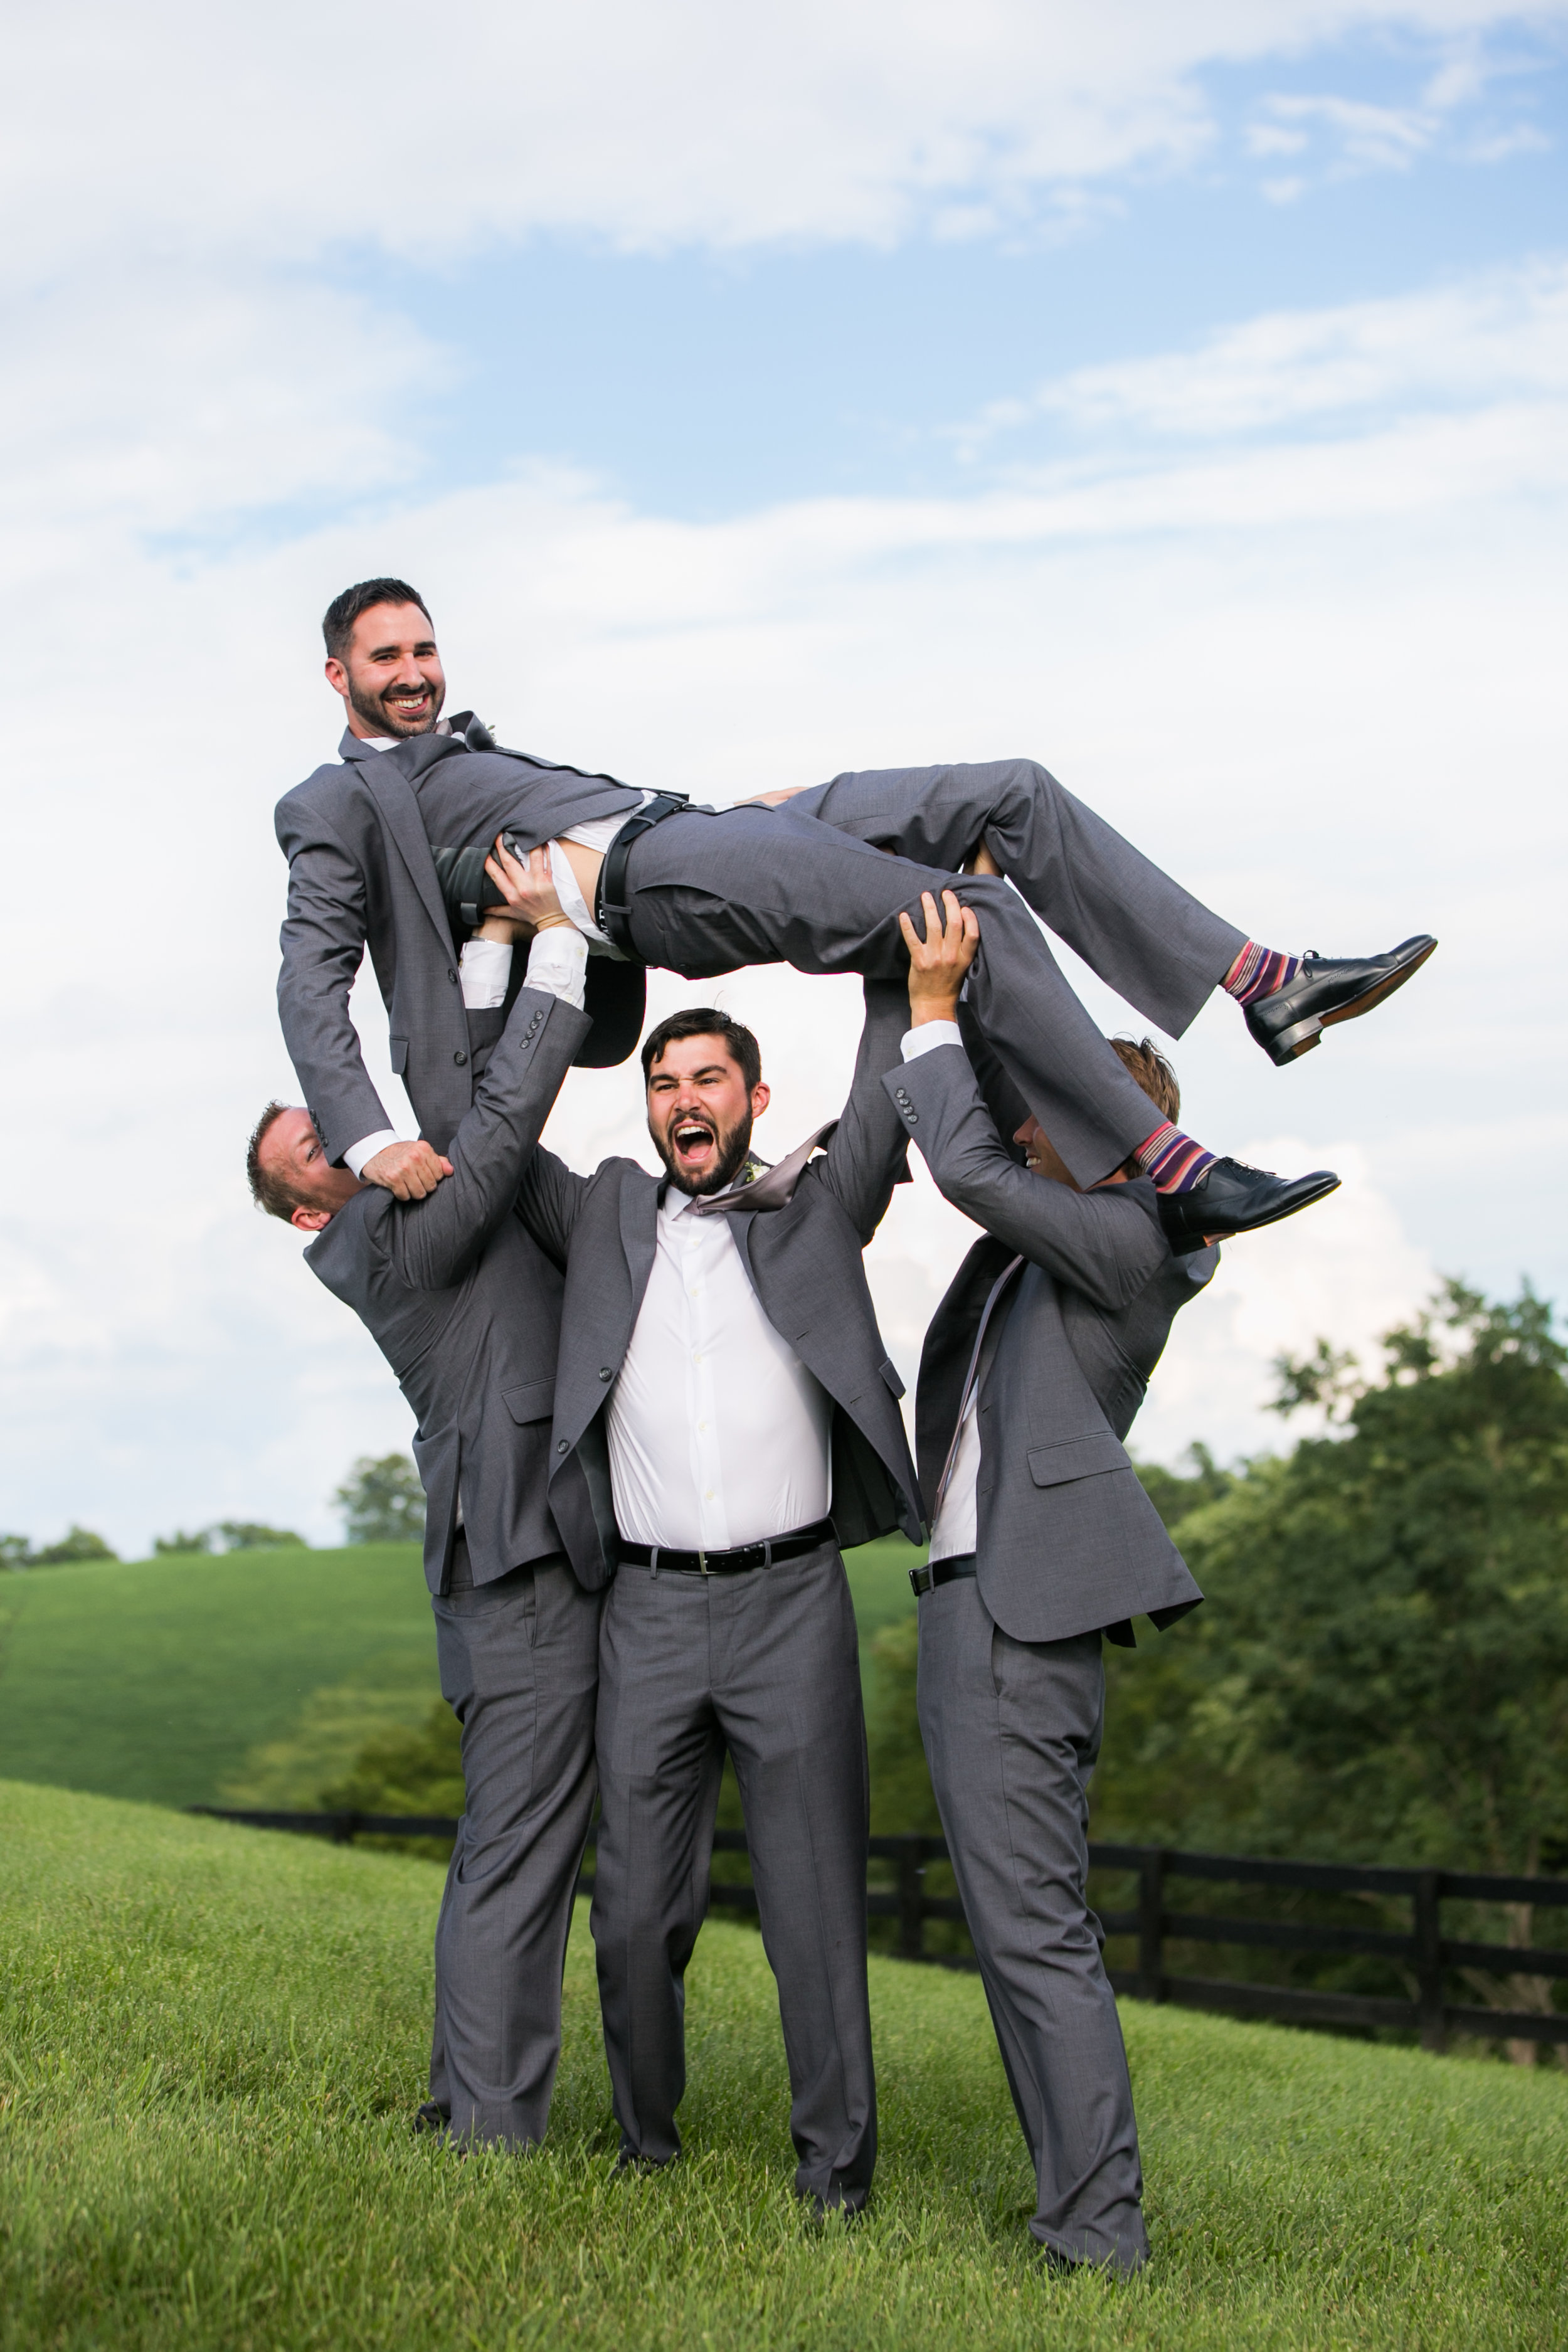 Fun Groom and groomsmen portrait by Genevieve Leiper at Shadow Creek